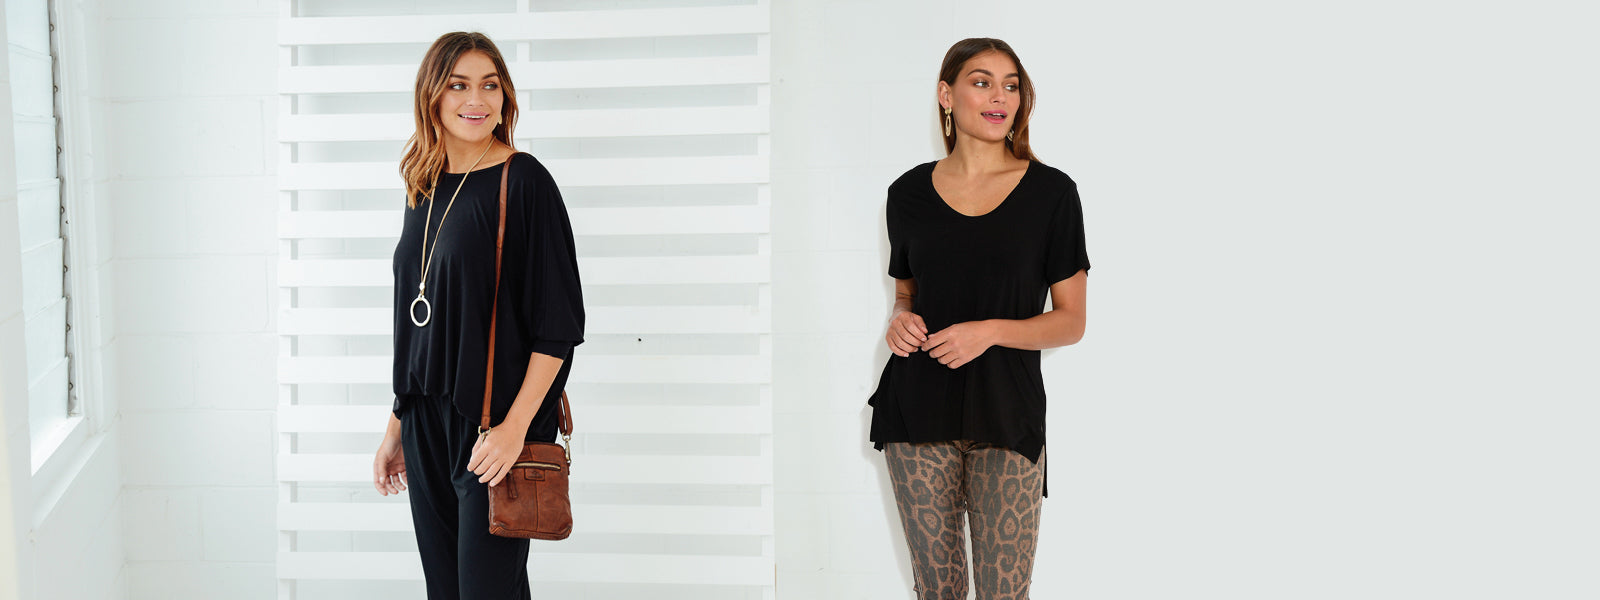 Comfortable Travel Clothes - Bamboo Tops